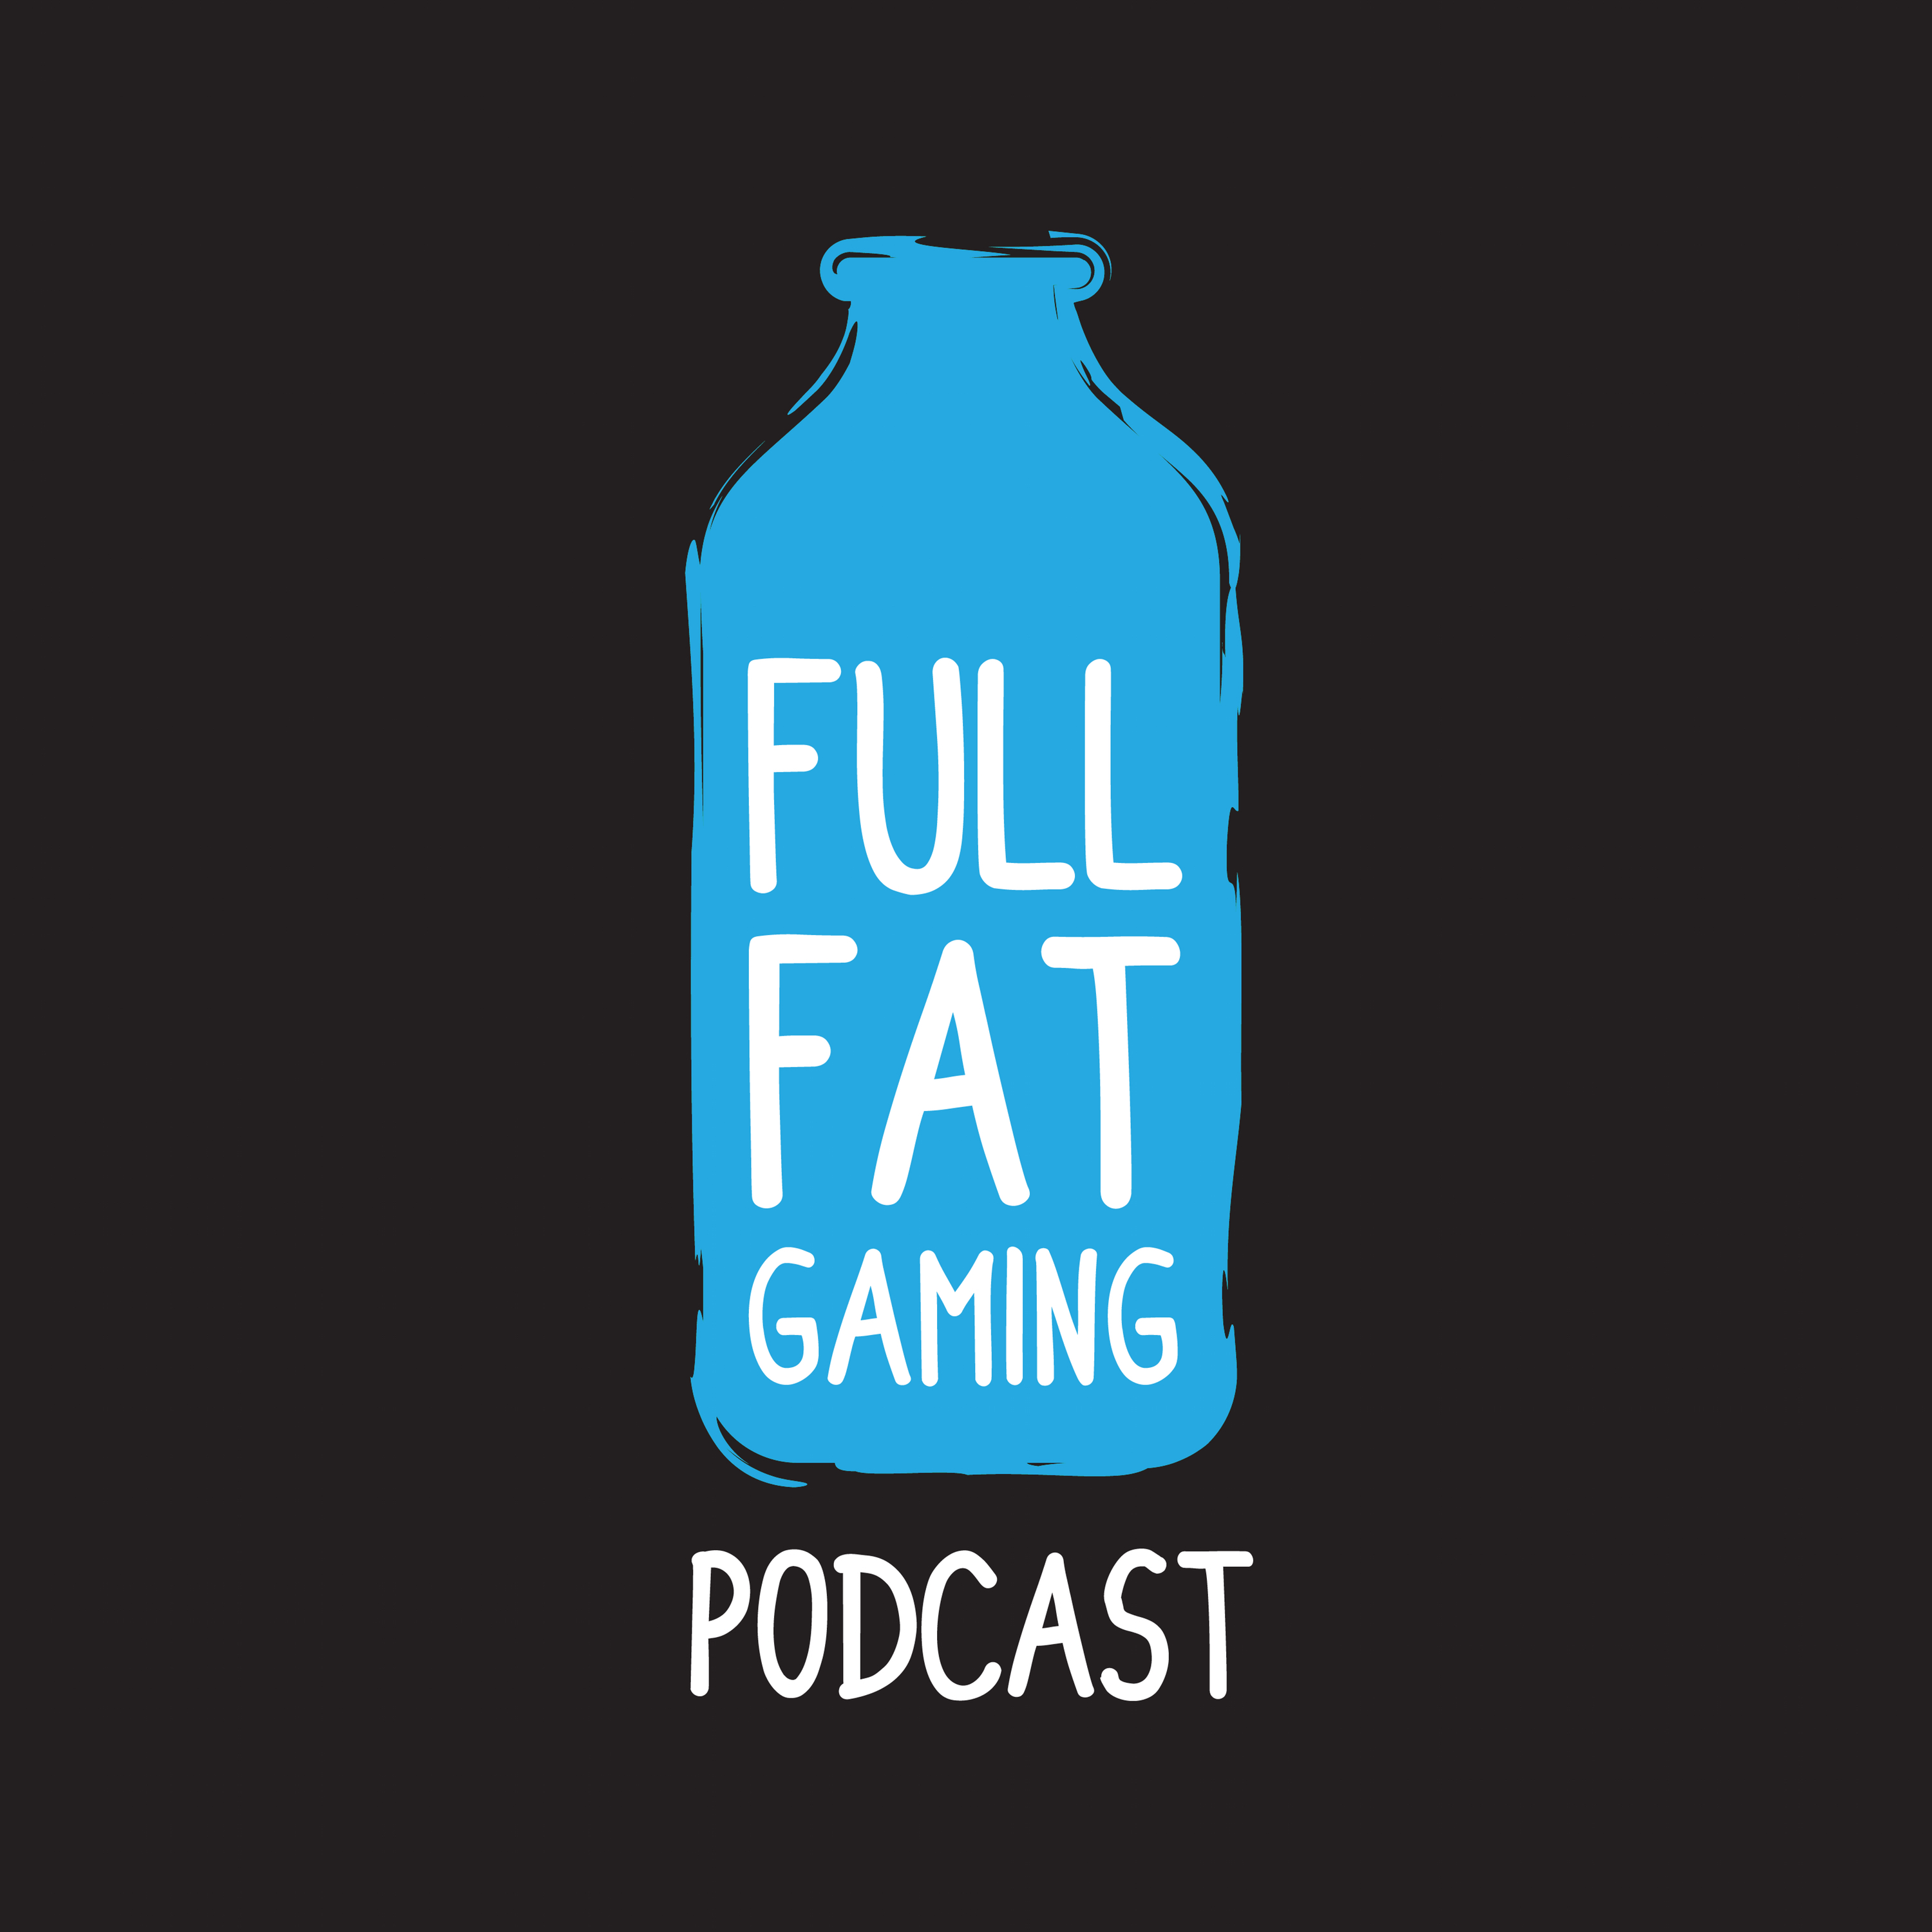 Full Fat Gaming